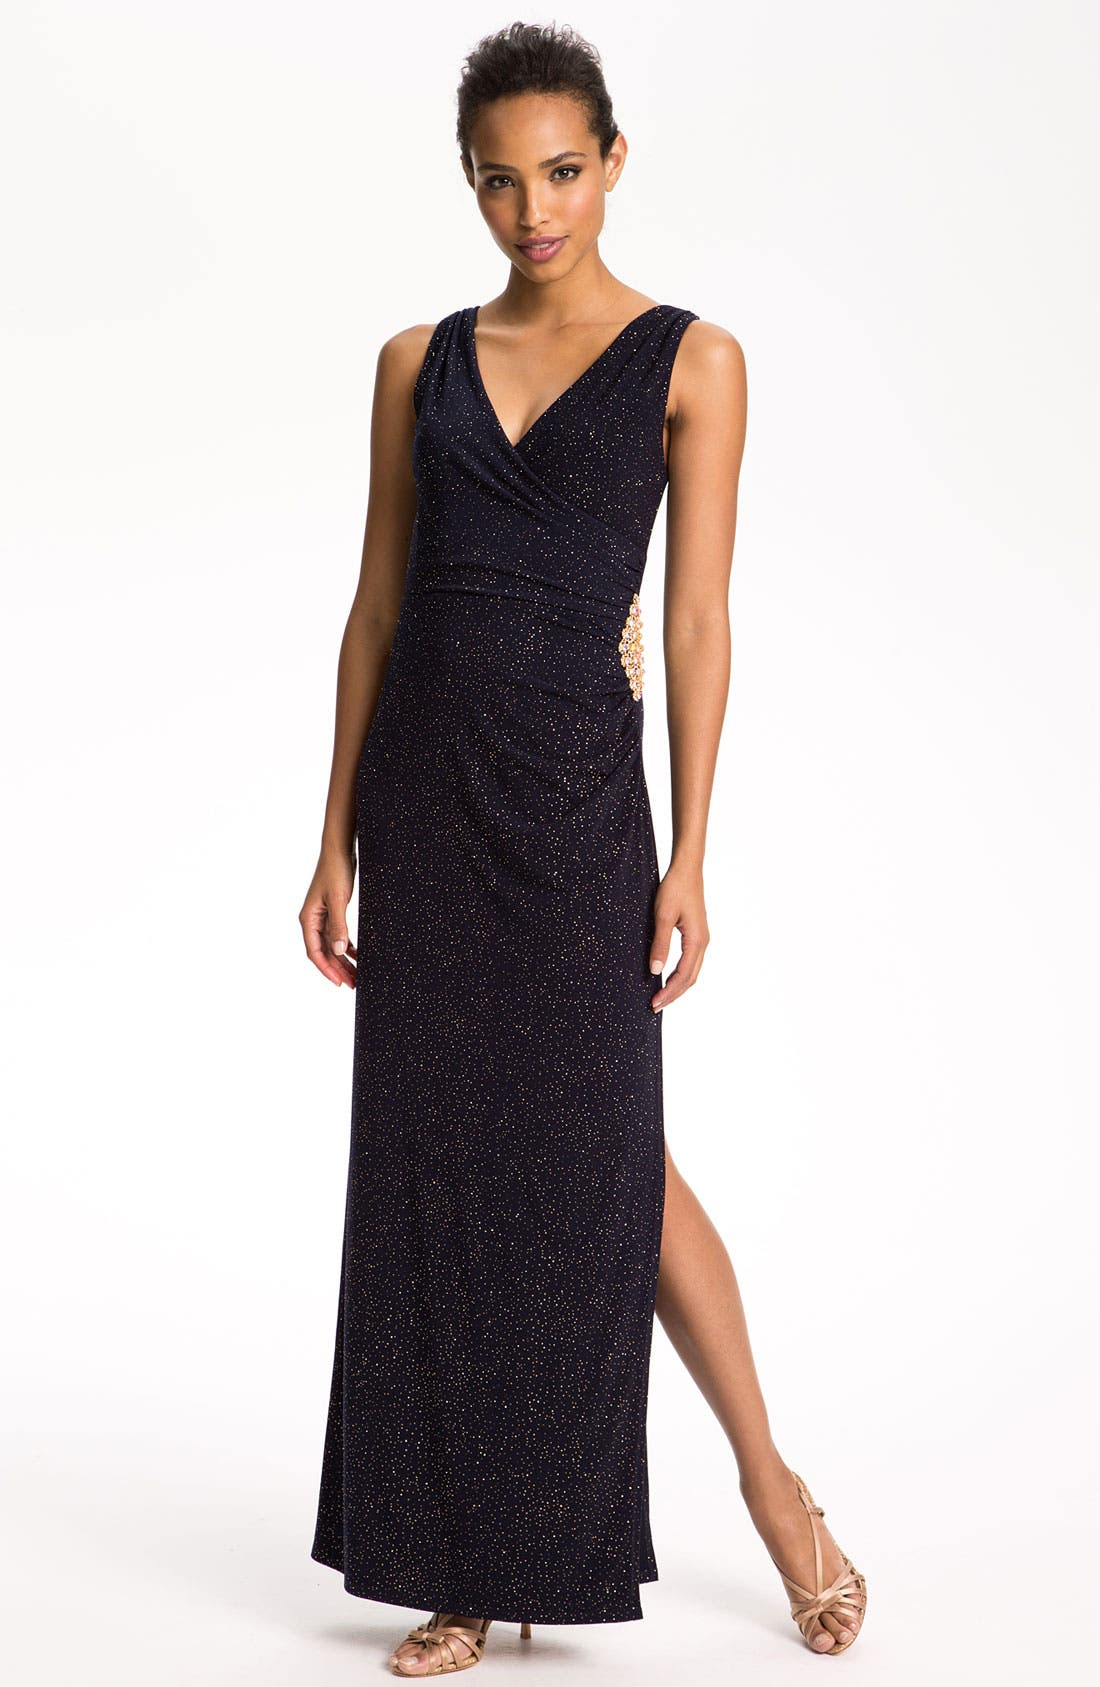 Alternate Image 1 Selected - Betsy & Adam Double V-Neck Glitter Gown